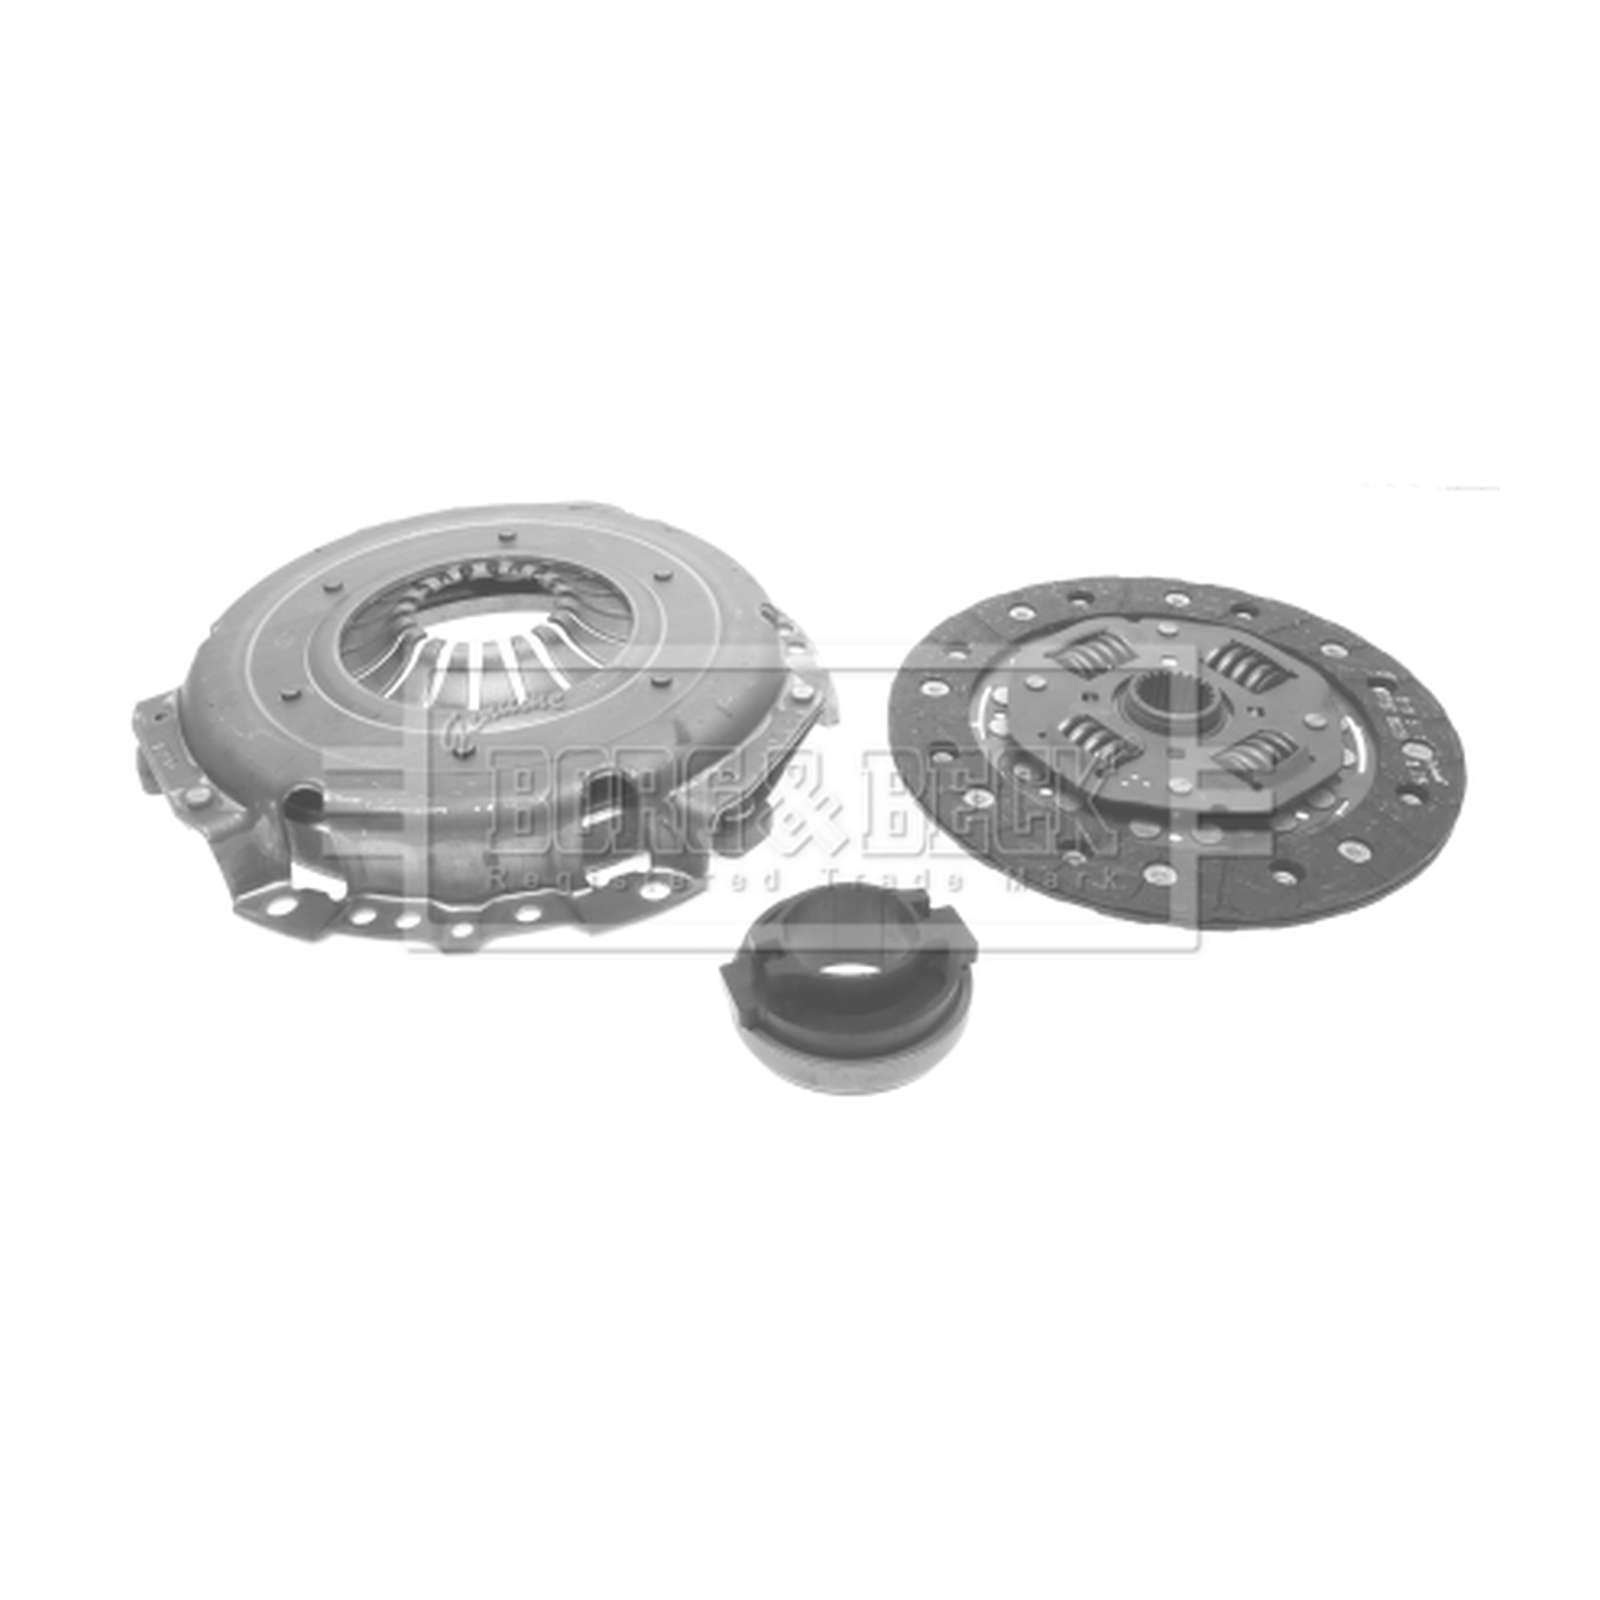 RELIANT SCIMITAR 1.6 Clutch Kit 3pc 85 to 90 LuK Quality Cover+Plate+Releaser